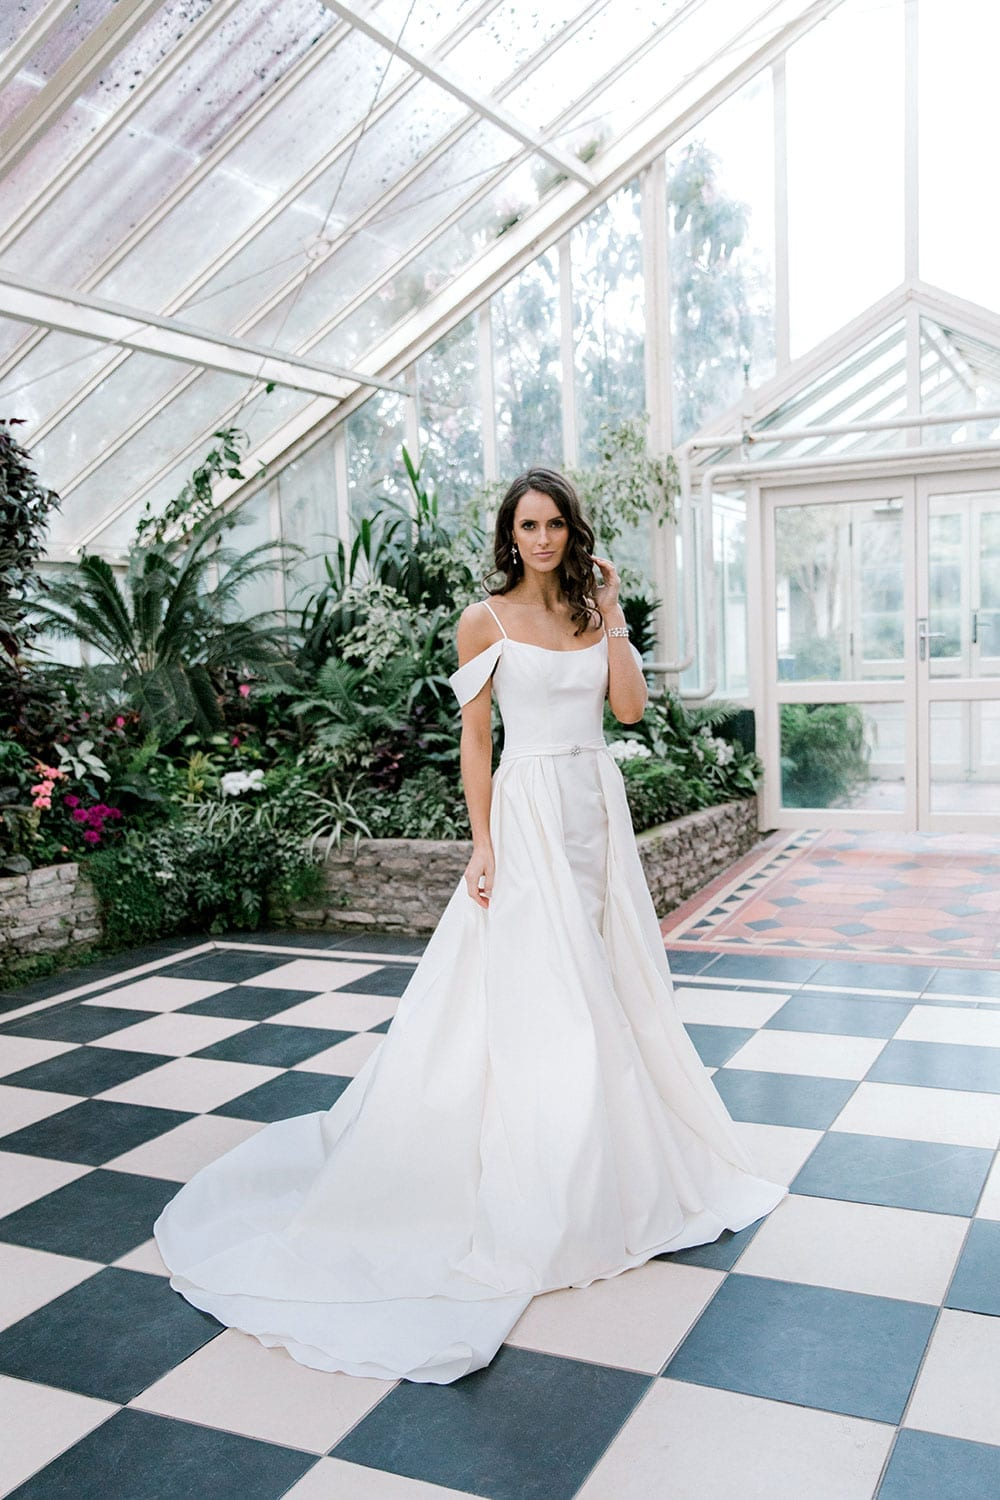 Model wearing Vinka Design Chiara Wedding Dress, a Modern Silk Wedding Gown with Train in a botanical garden greenhouse train to the side